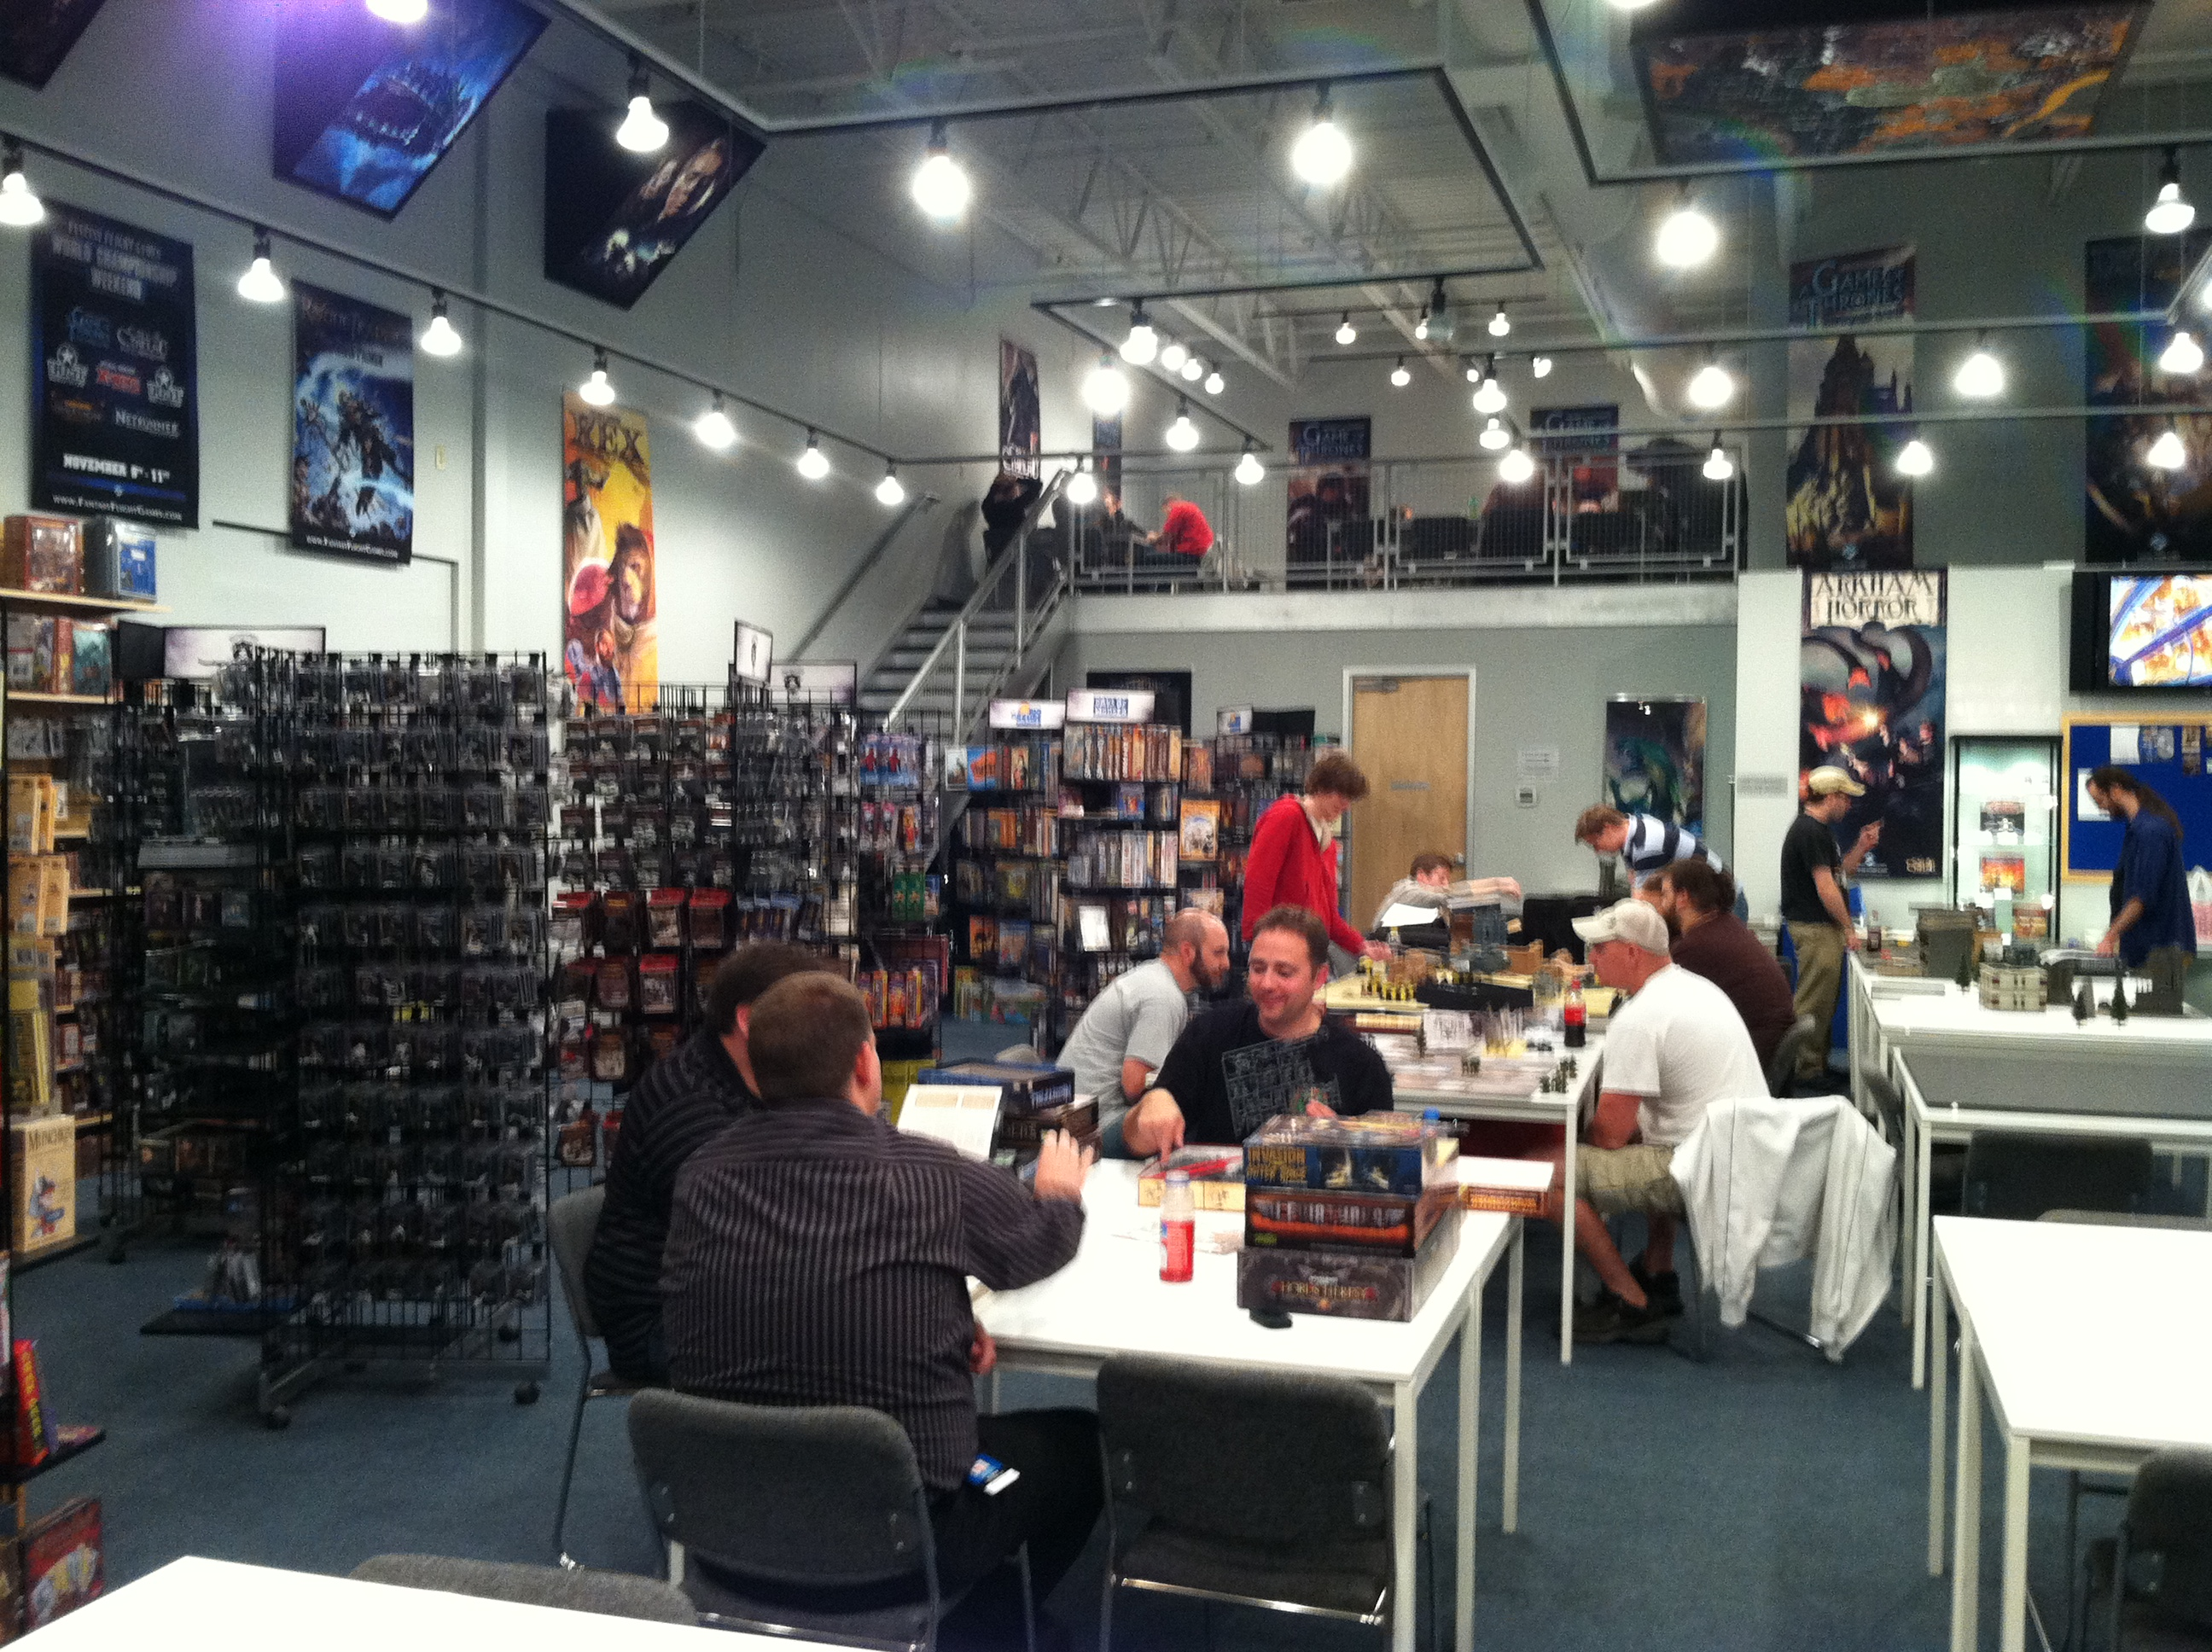 The Journeyman GM » Fantasy Flight Games Event Center